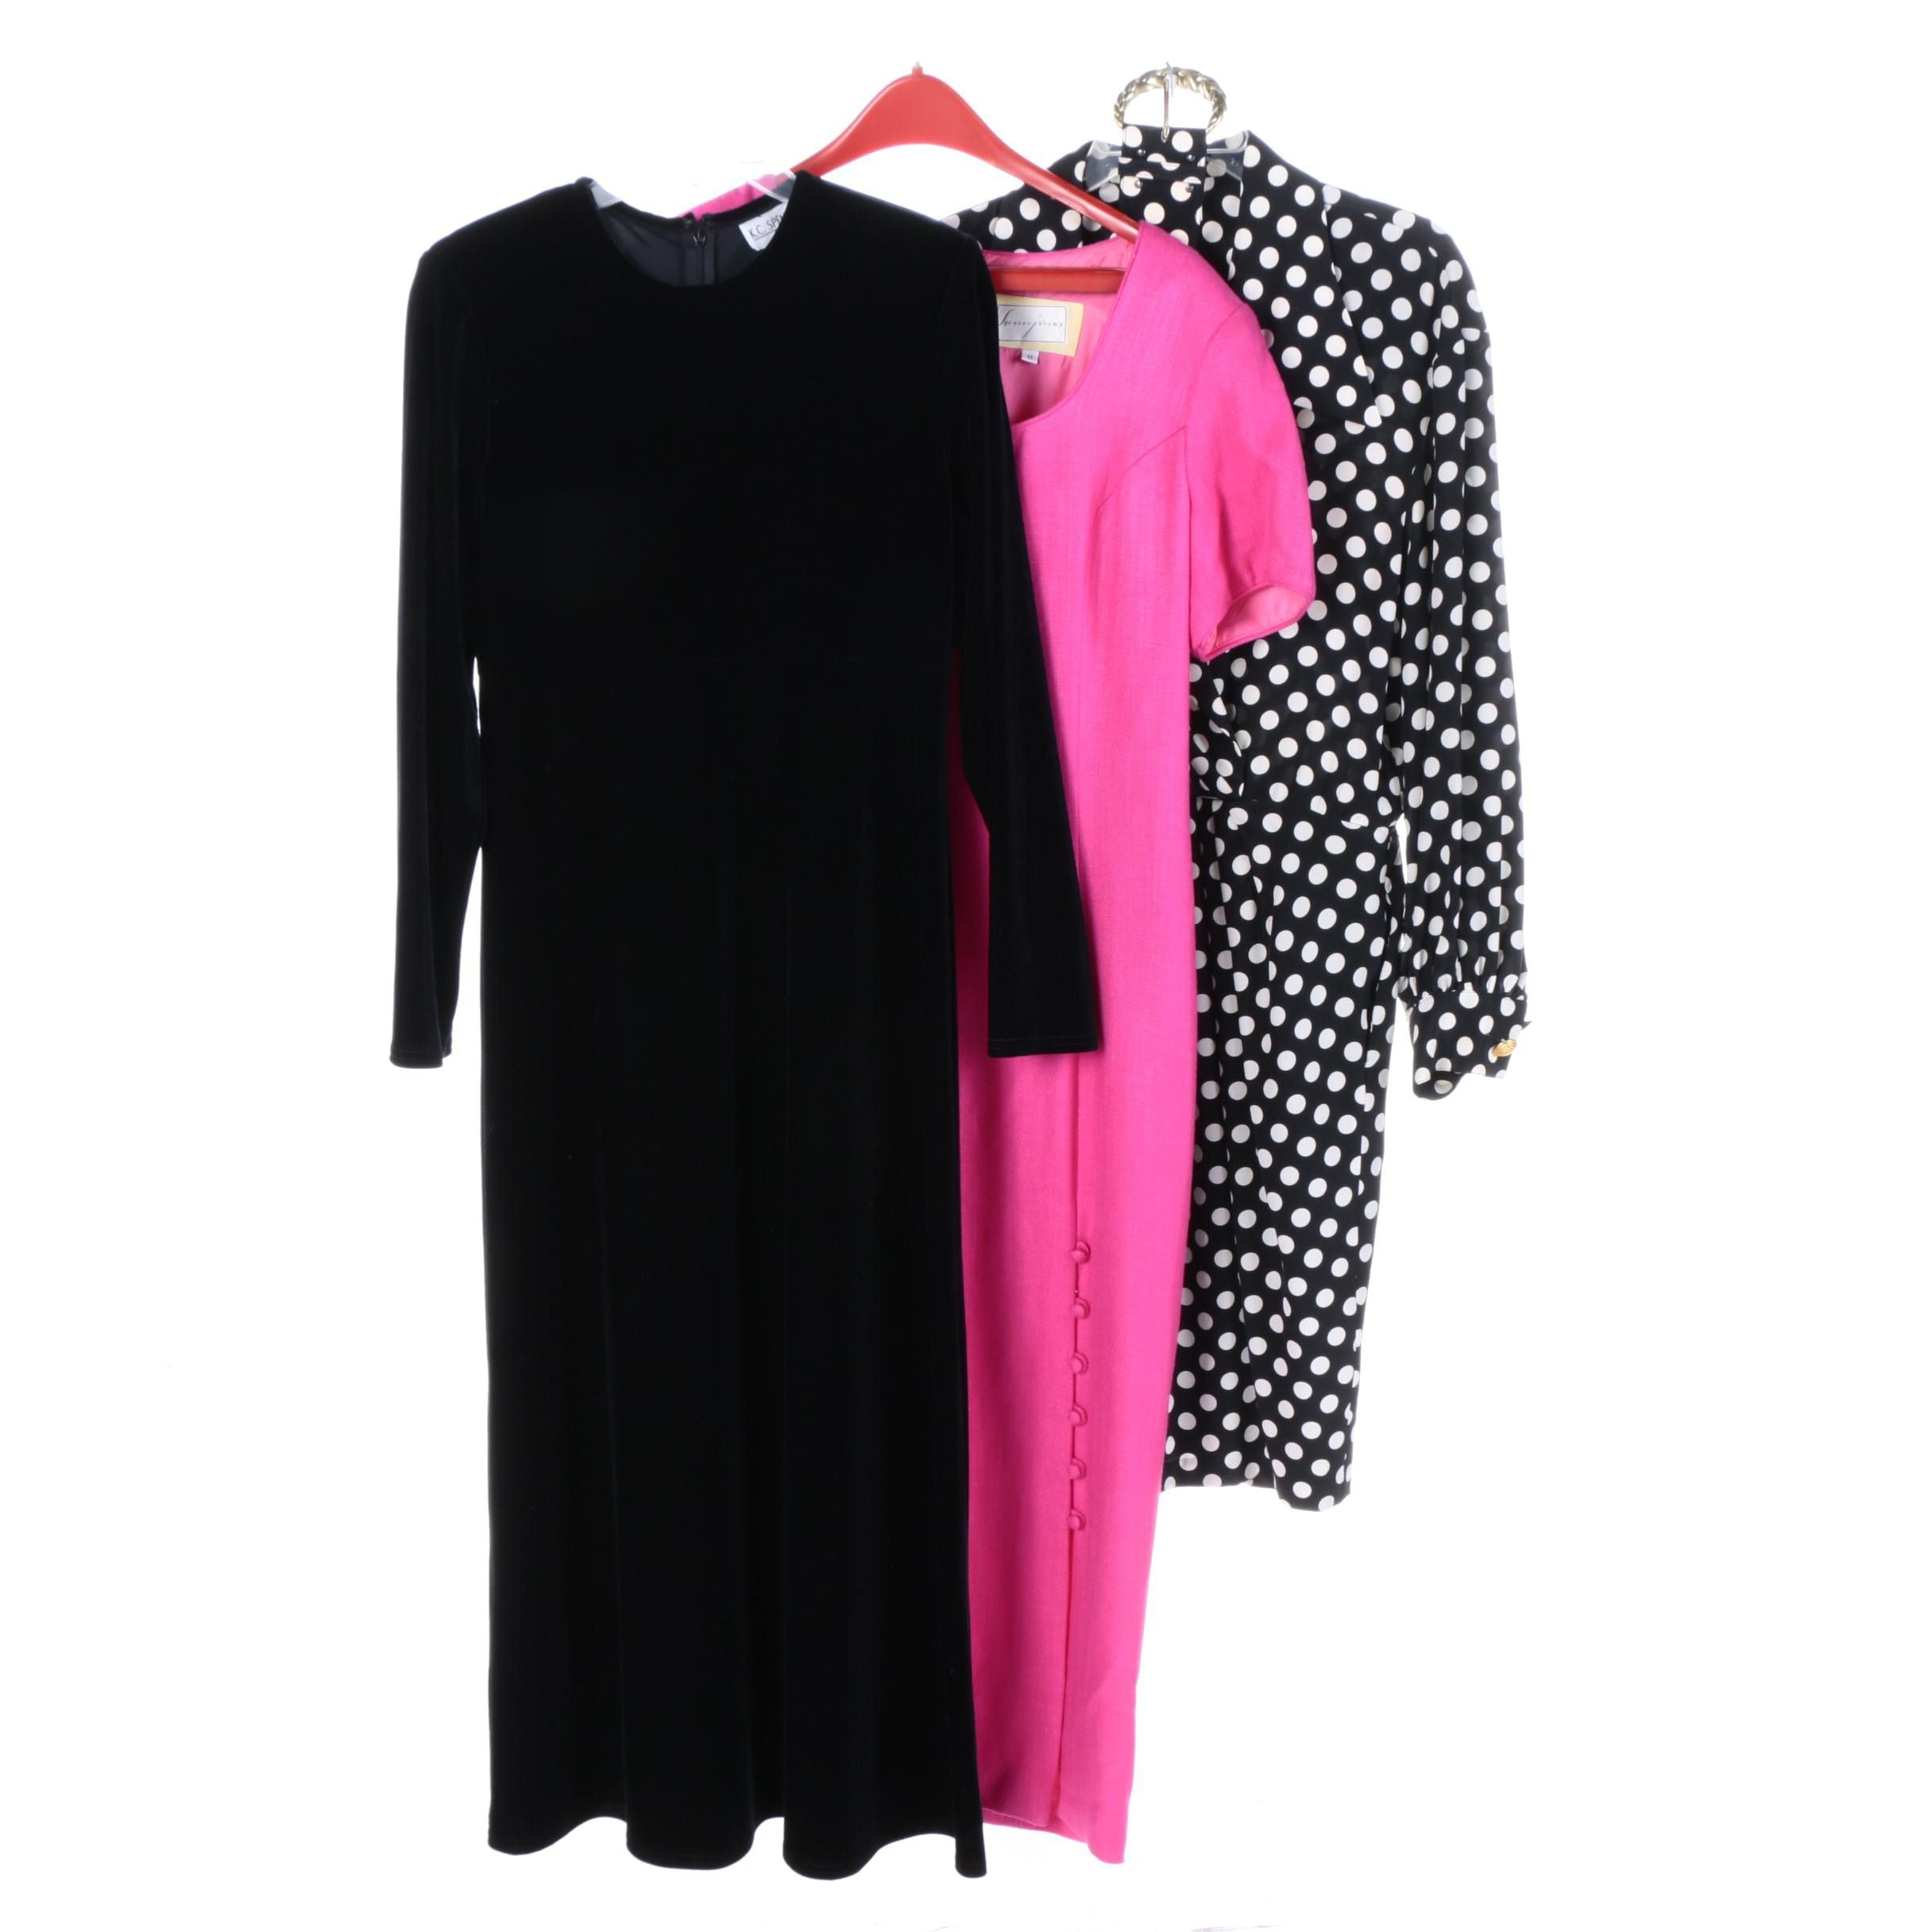 Women's Dresses, Including Gillian